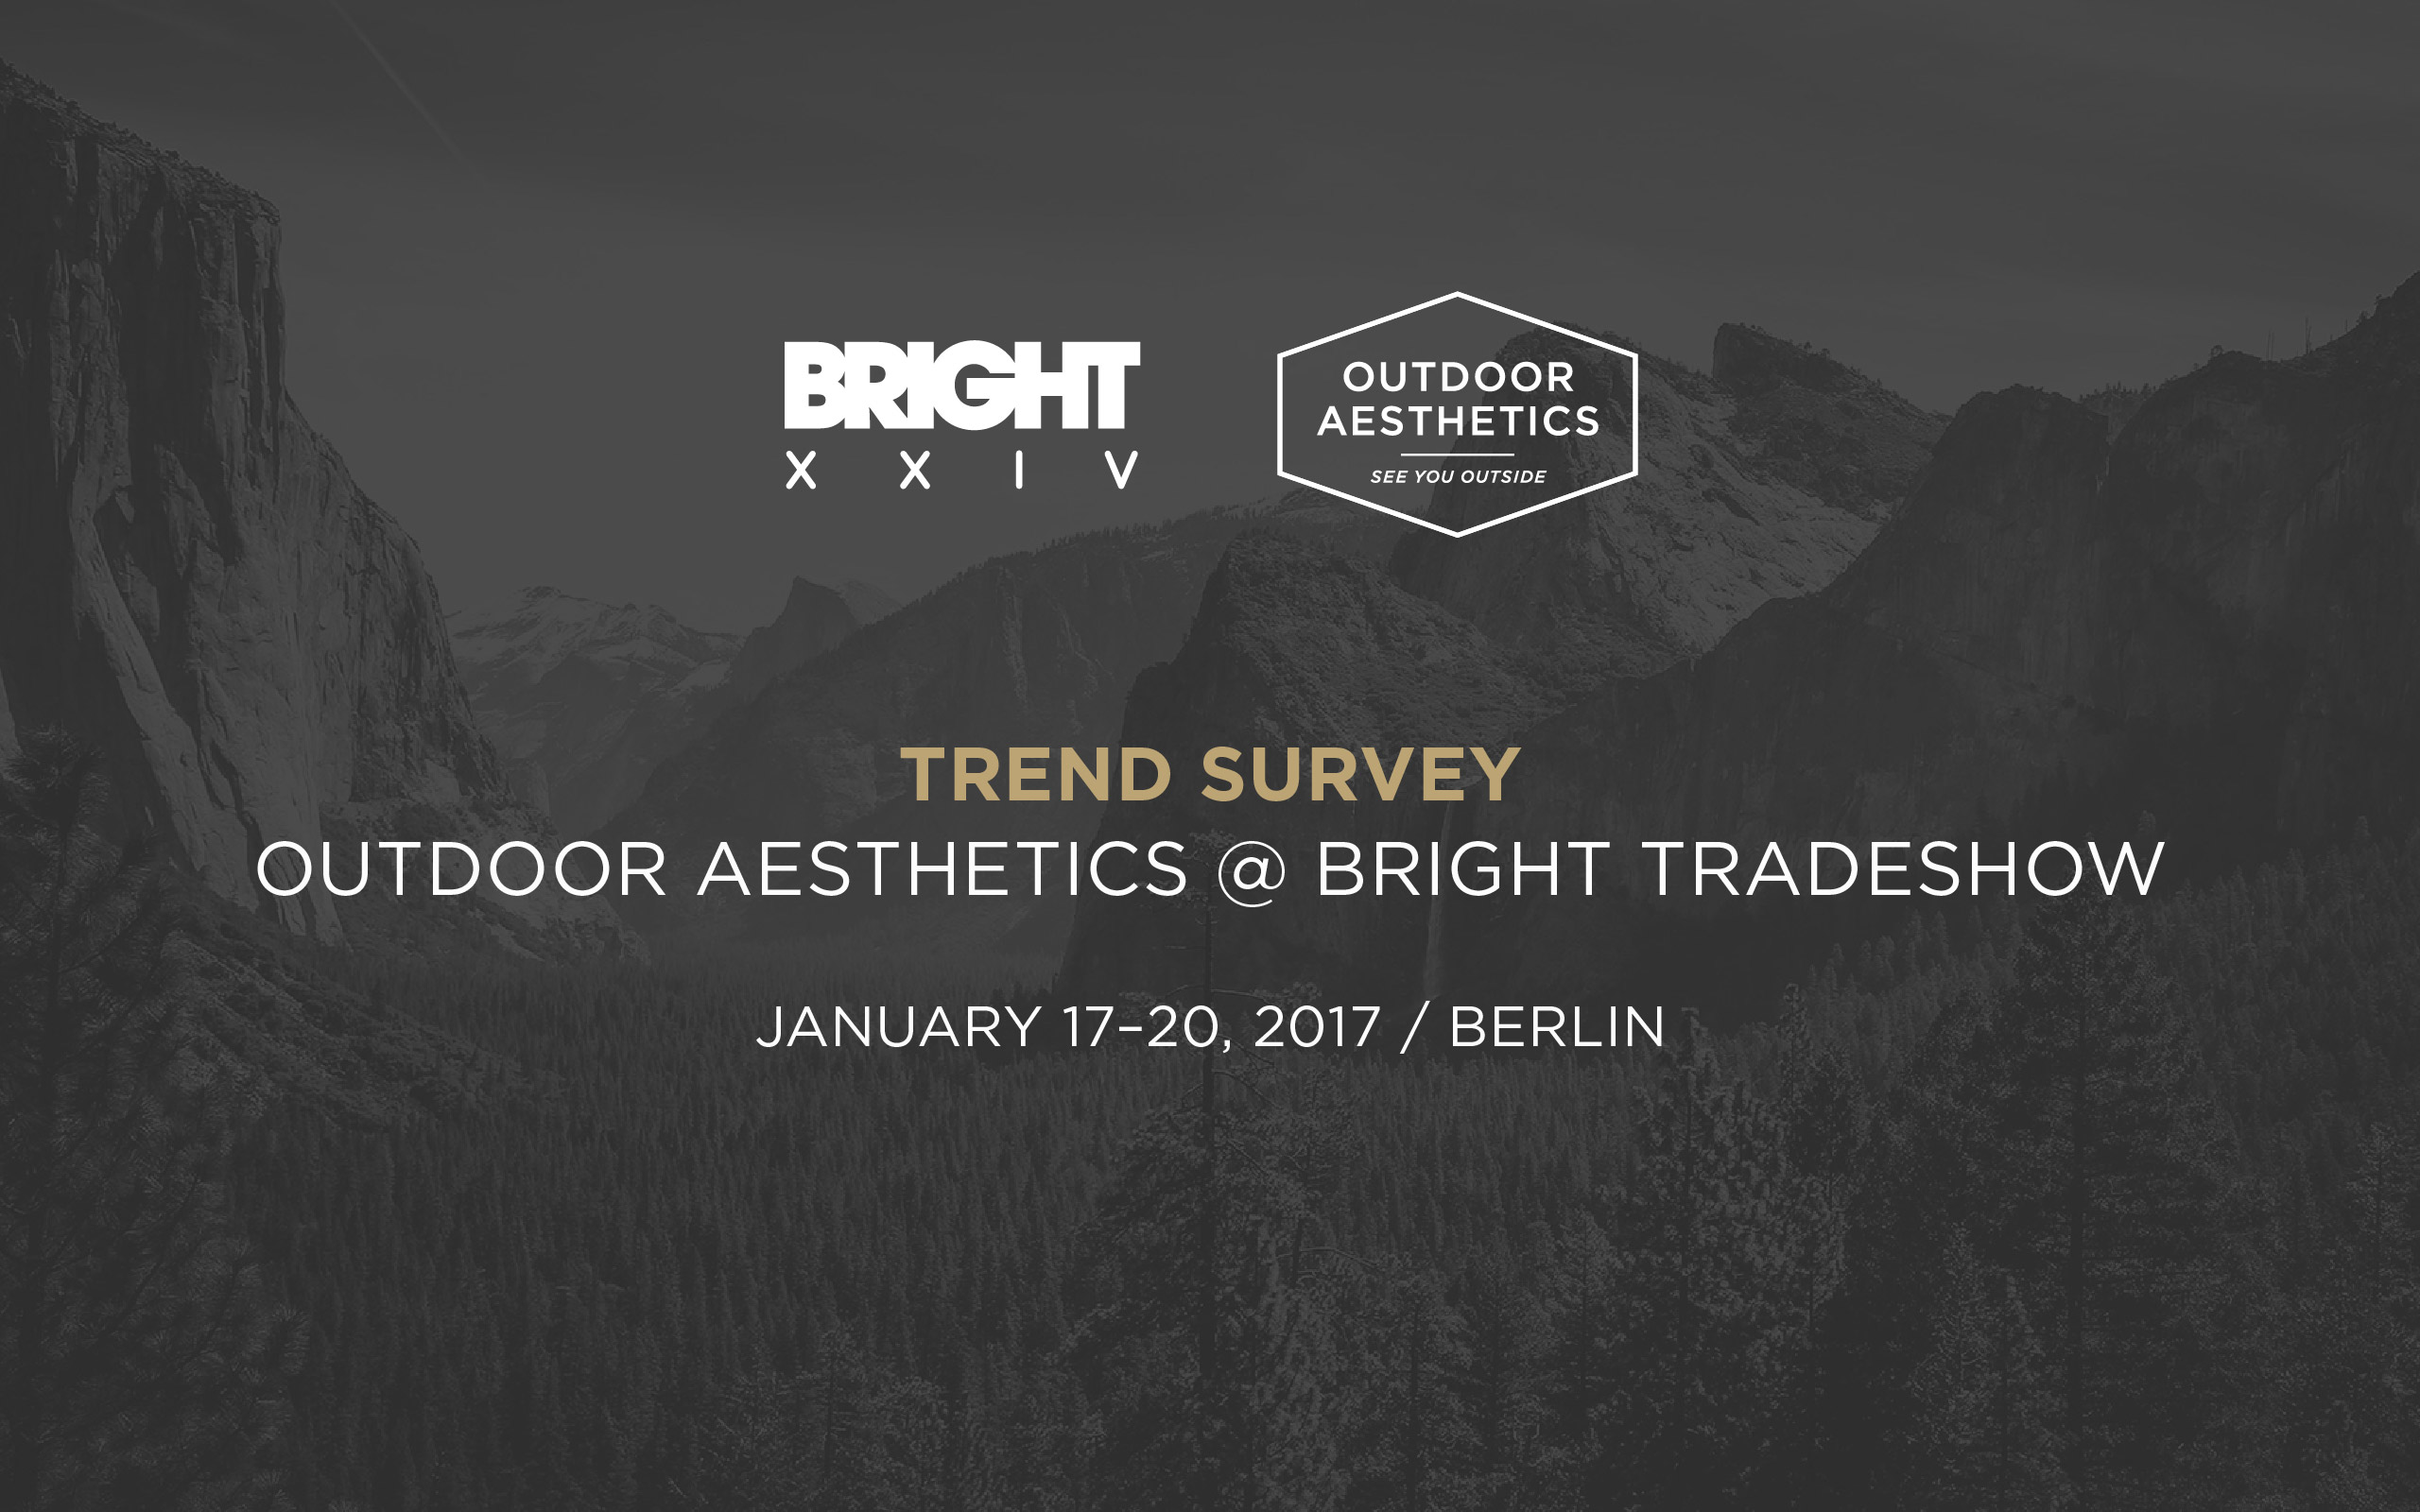 outdoor-aesthetics-trend-survey-2017-01